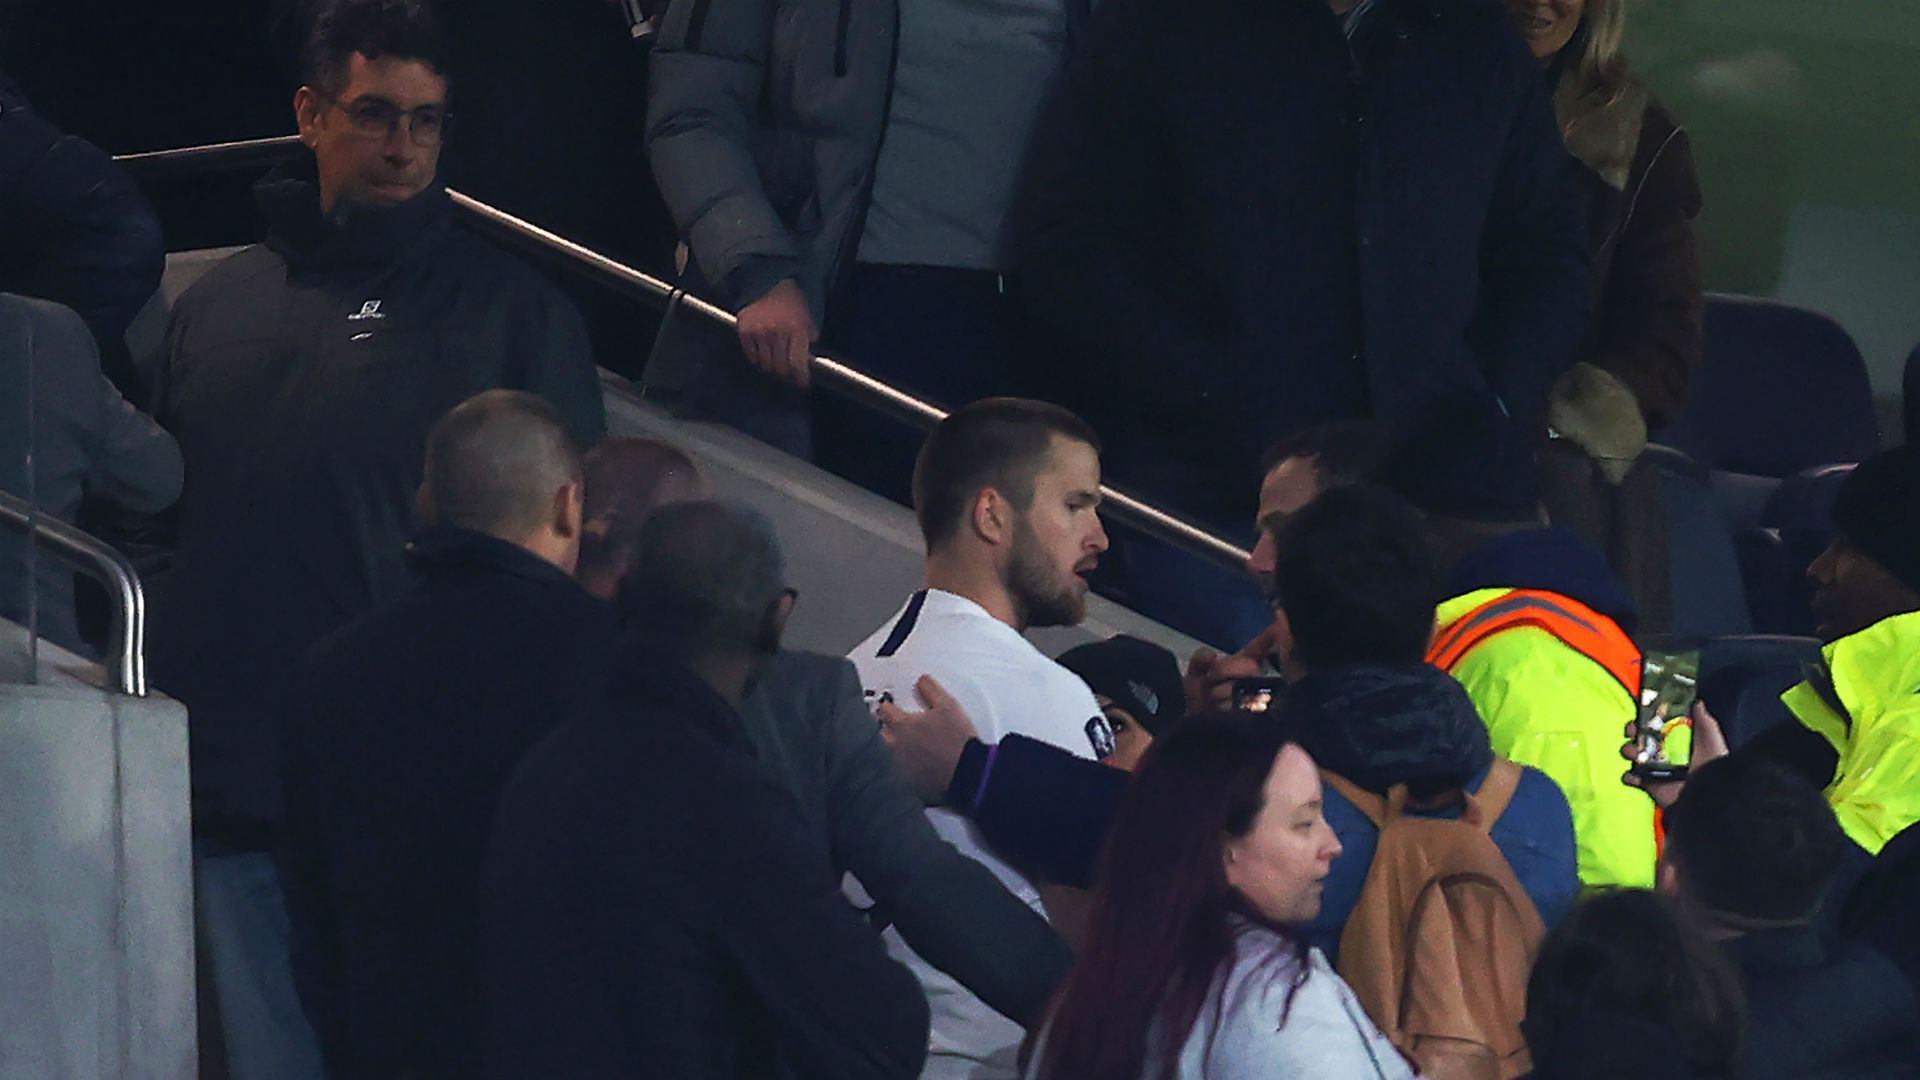 Dier, Cantona, Stokes and the spectacle of player-fan confrontations